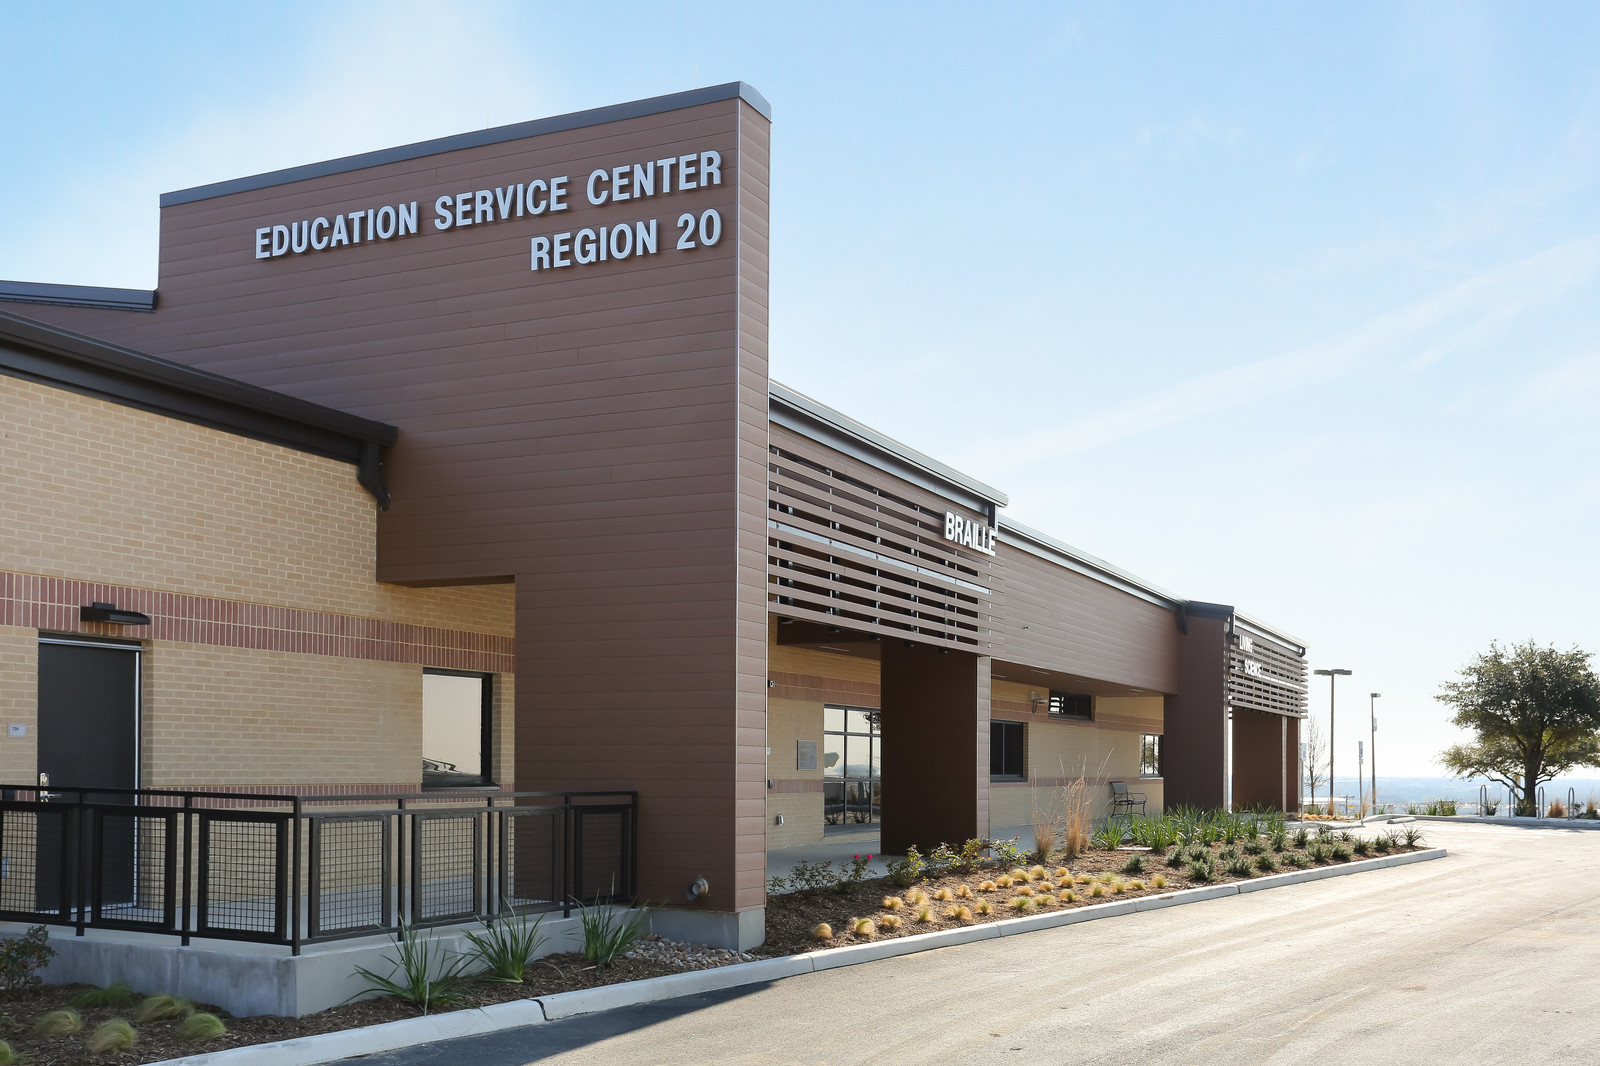 Region 20 - Education Service Center